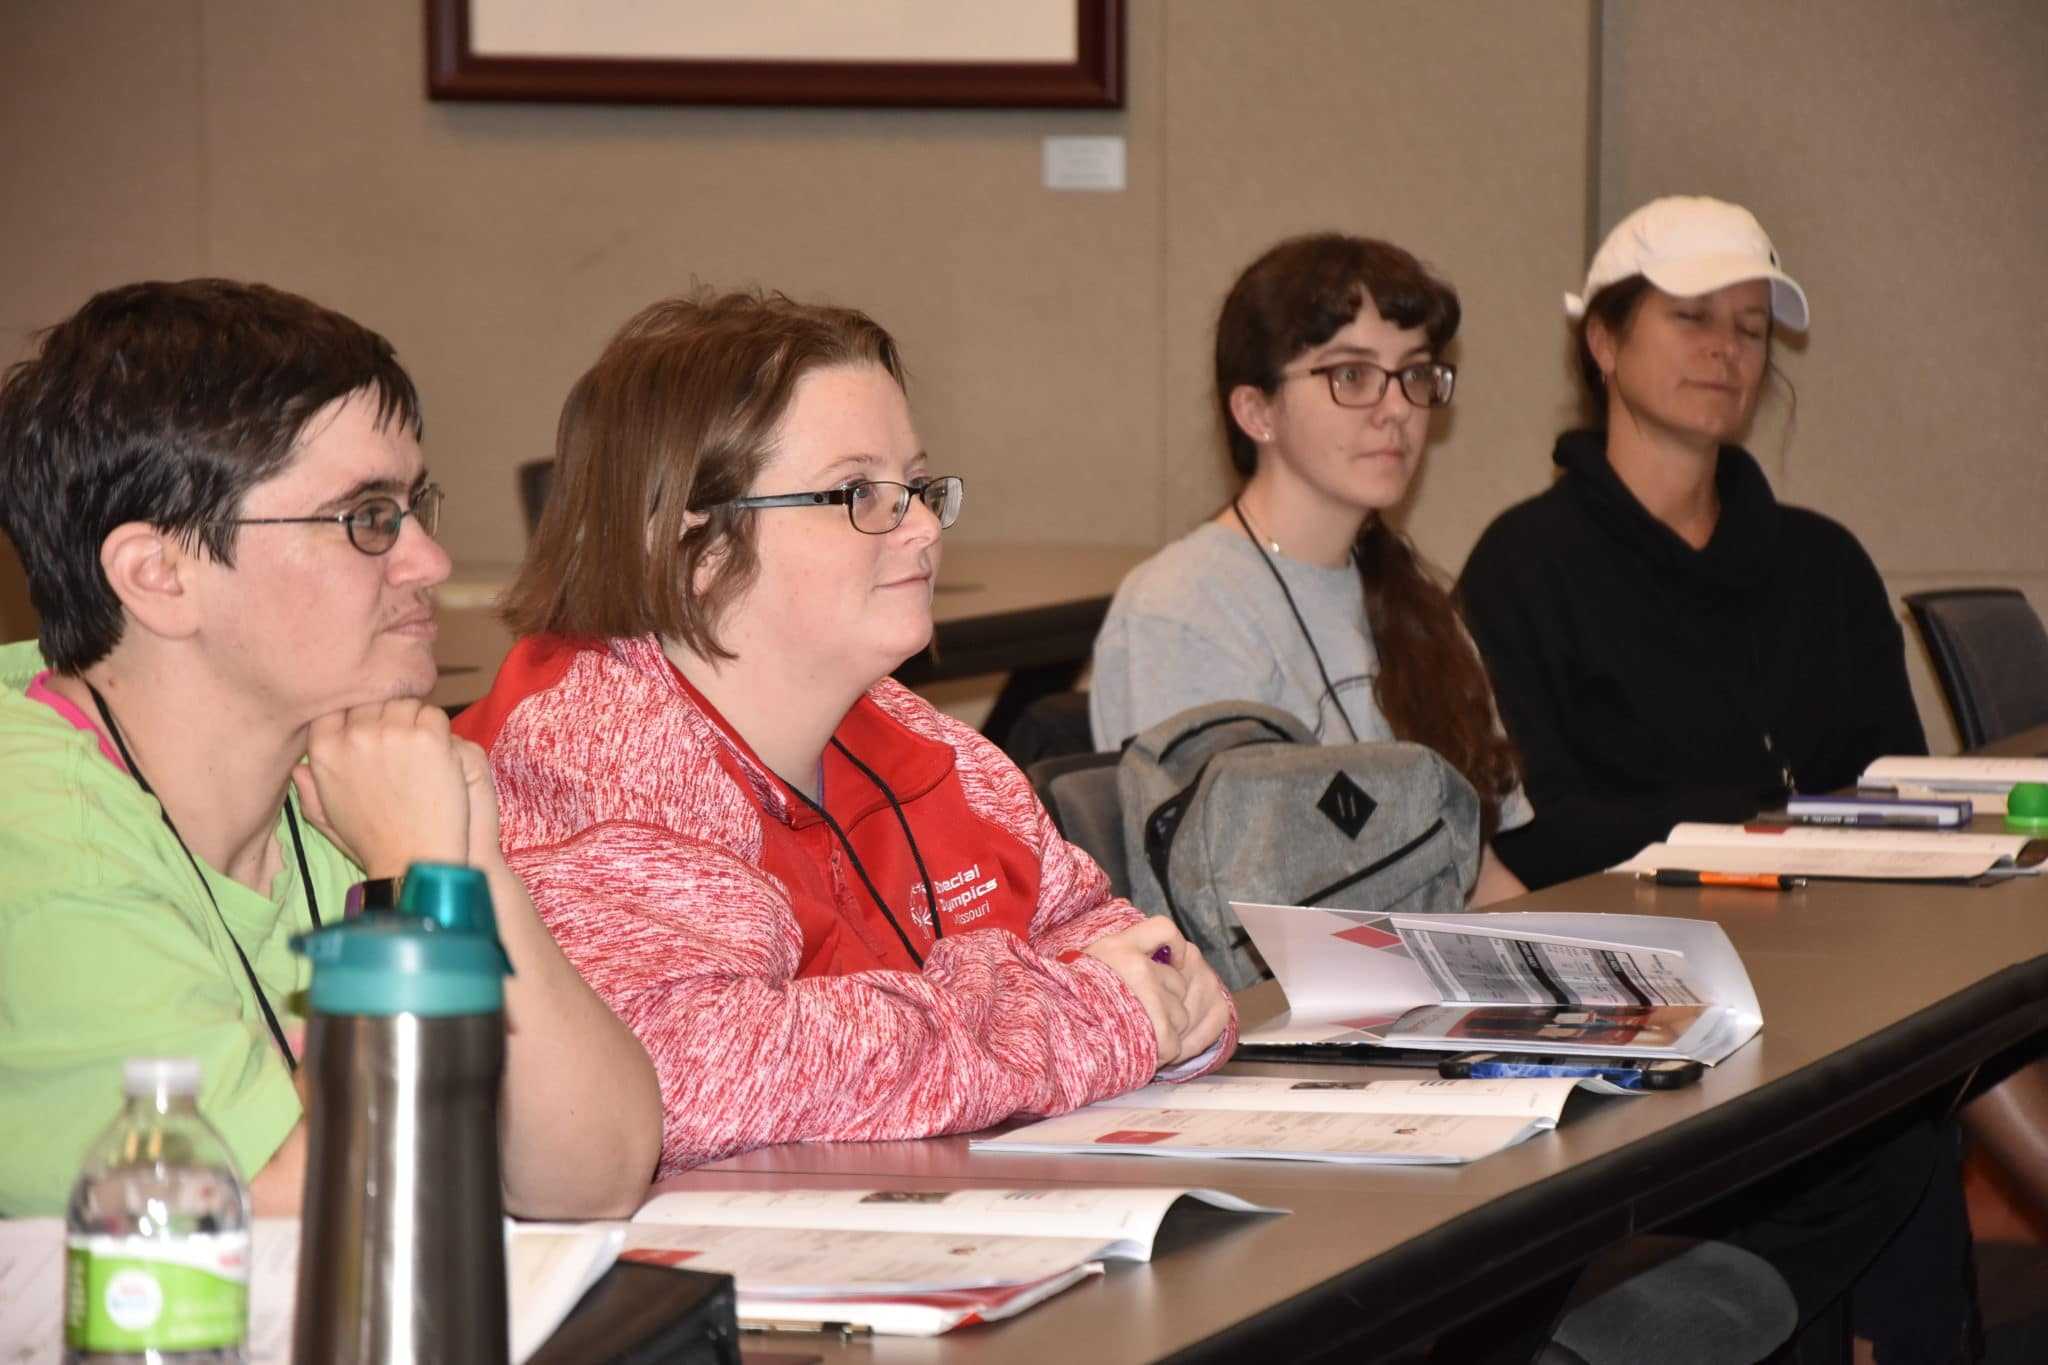 Two athlete-leaders and two mentors pay attention during an Athlete Leadership class